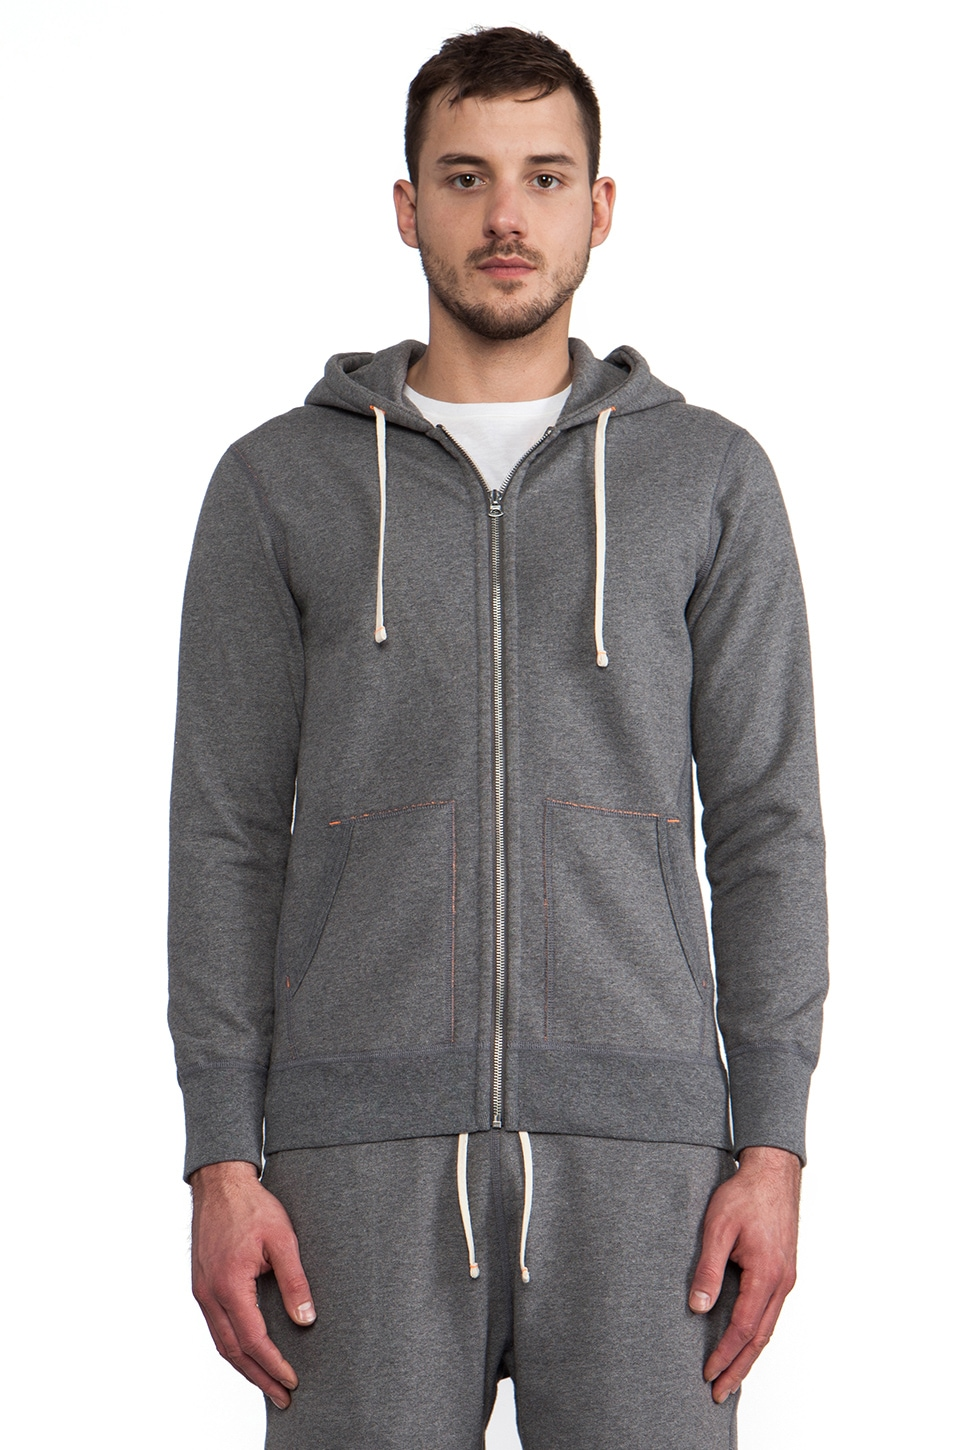 Reigning Champ x United Arrows Beauty & Youth Full-Zip Hoodie in Heather Charcoal & Orange